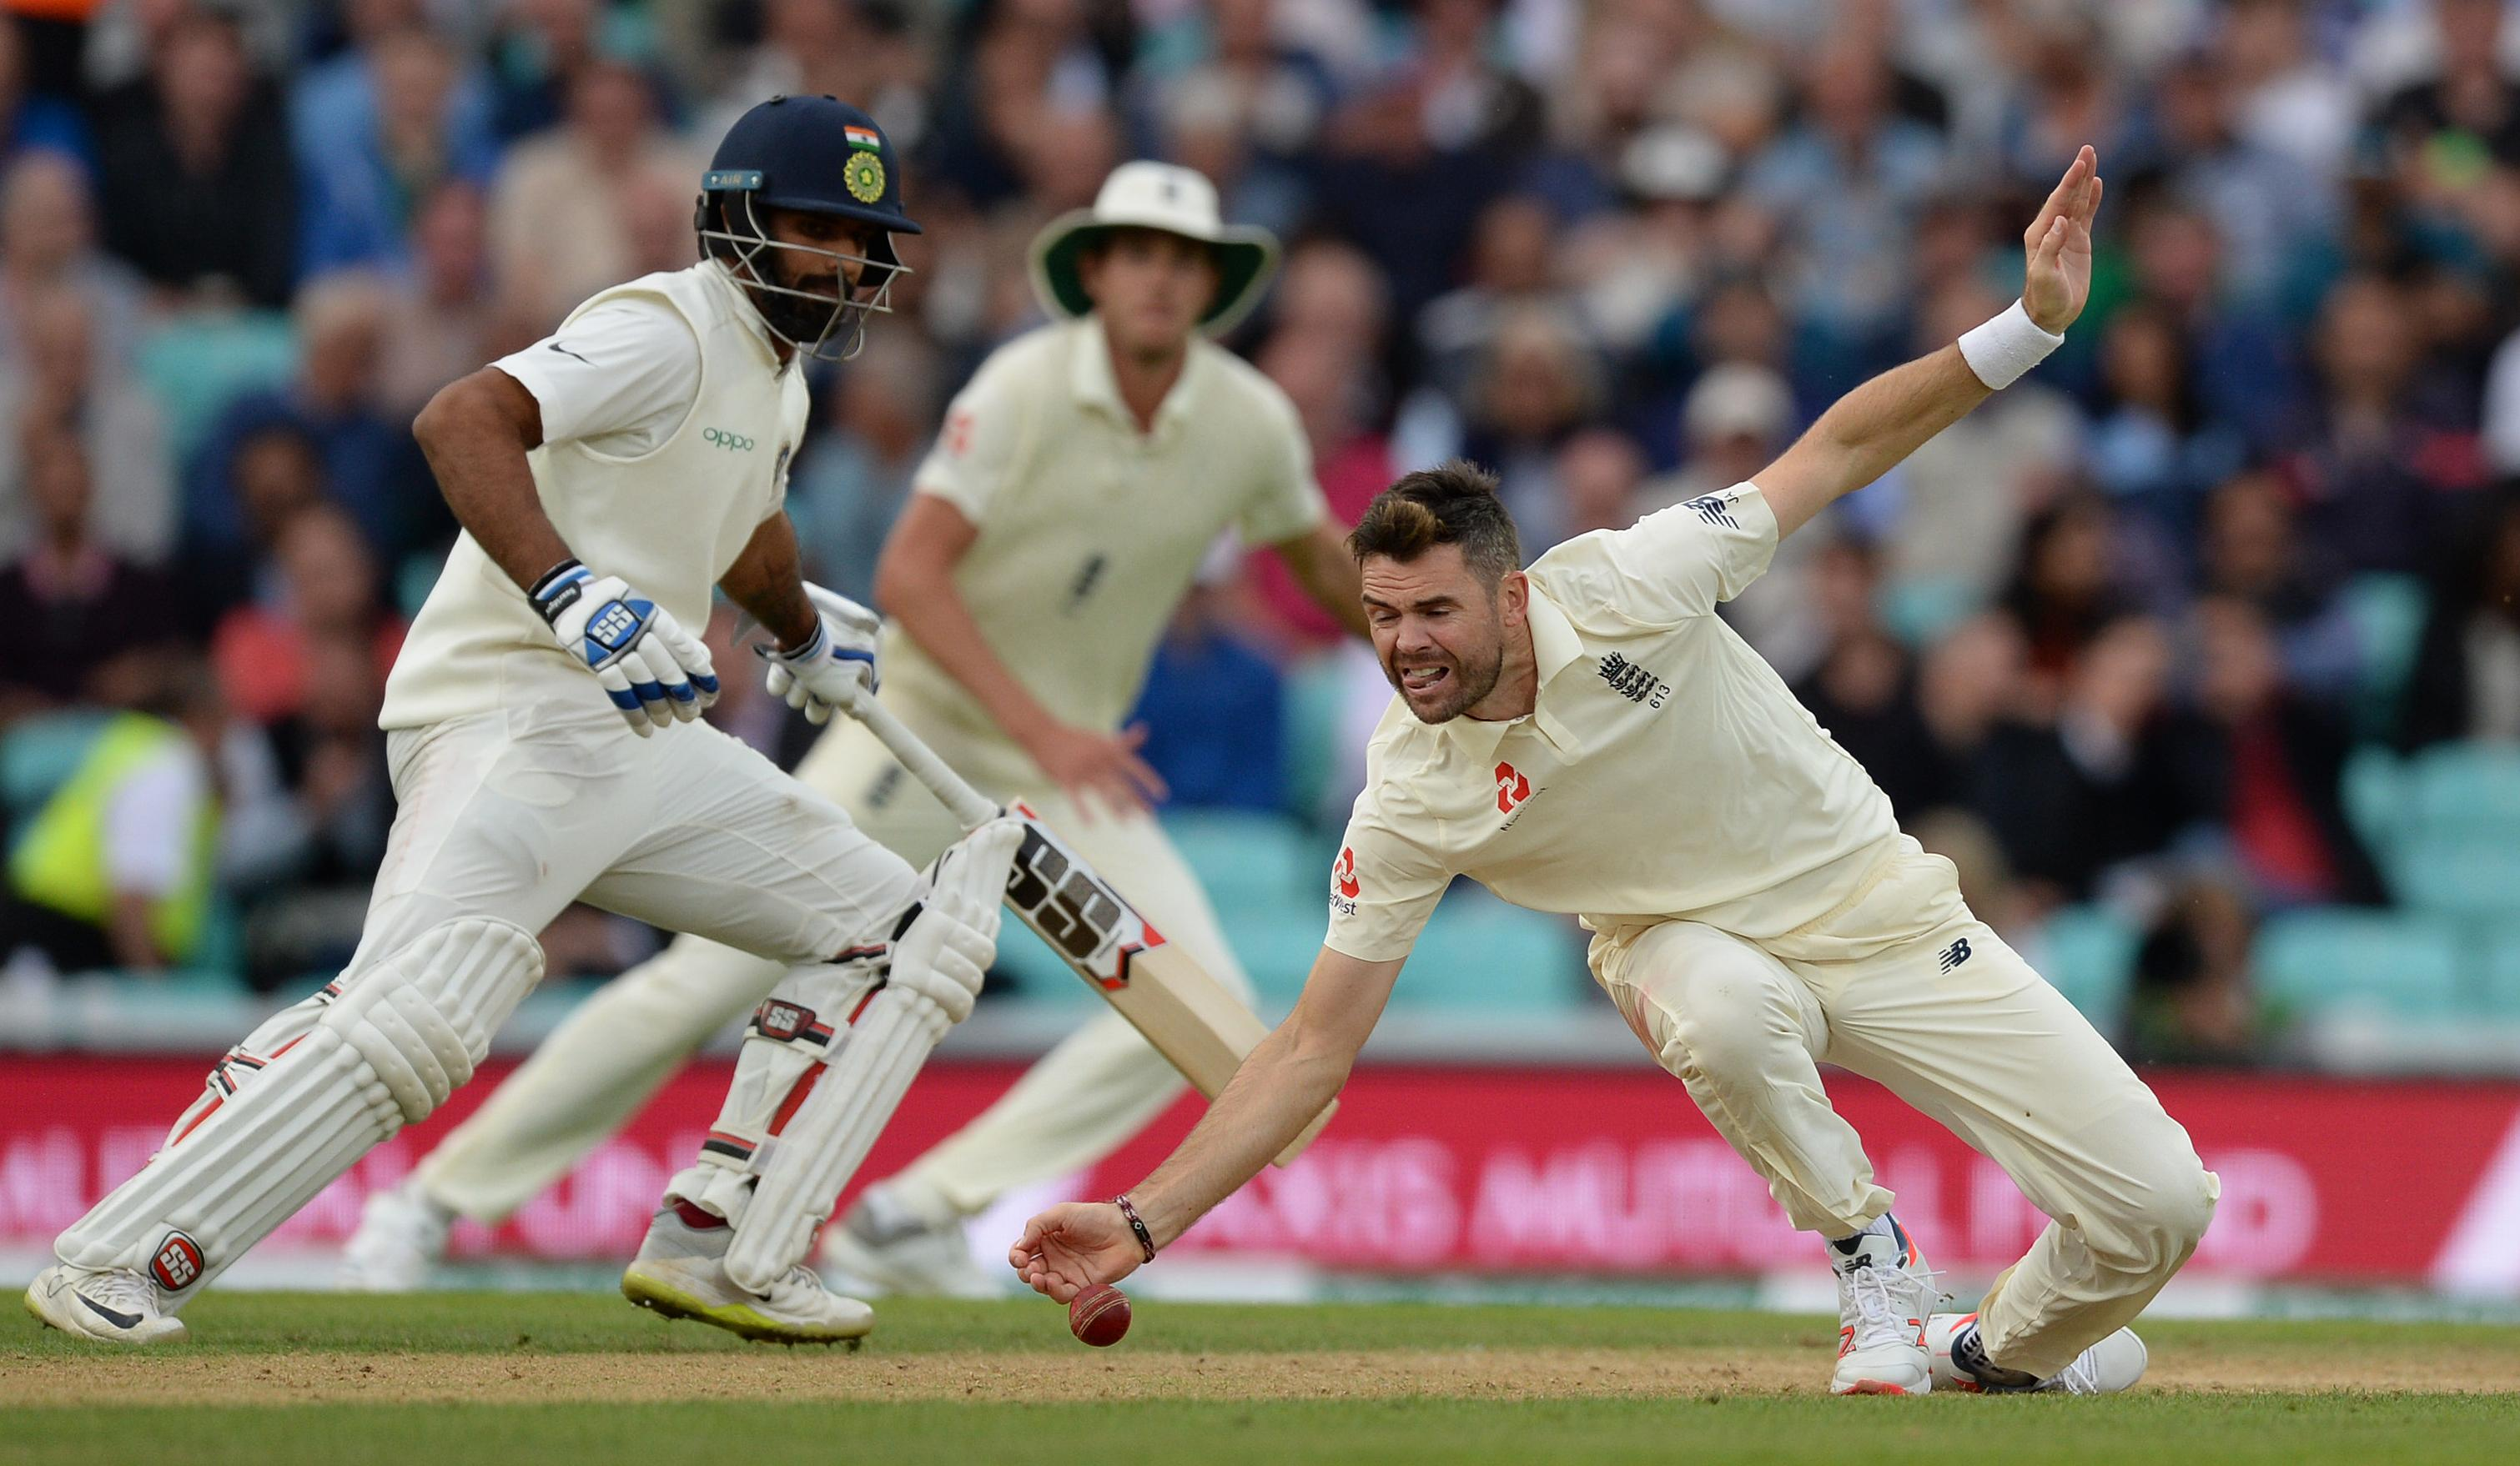 James Anderson of England stops the ball during the fifth Specsavers Test Match.